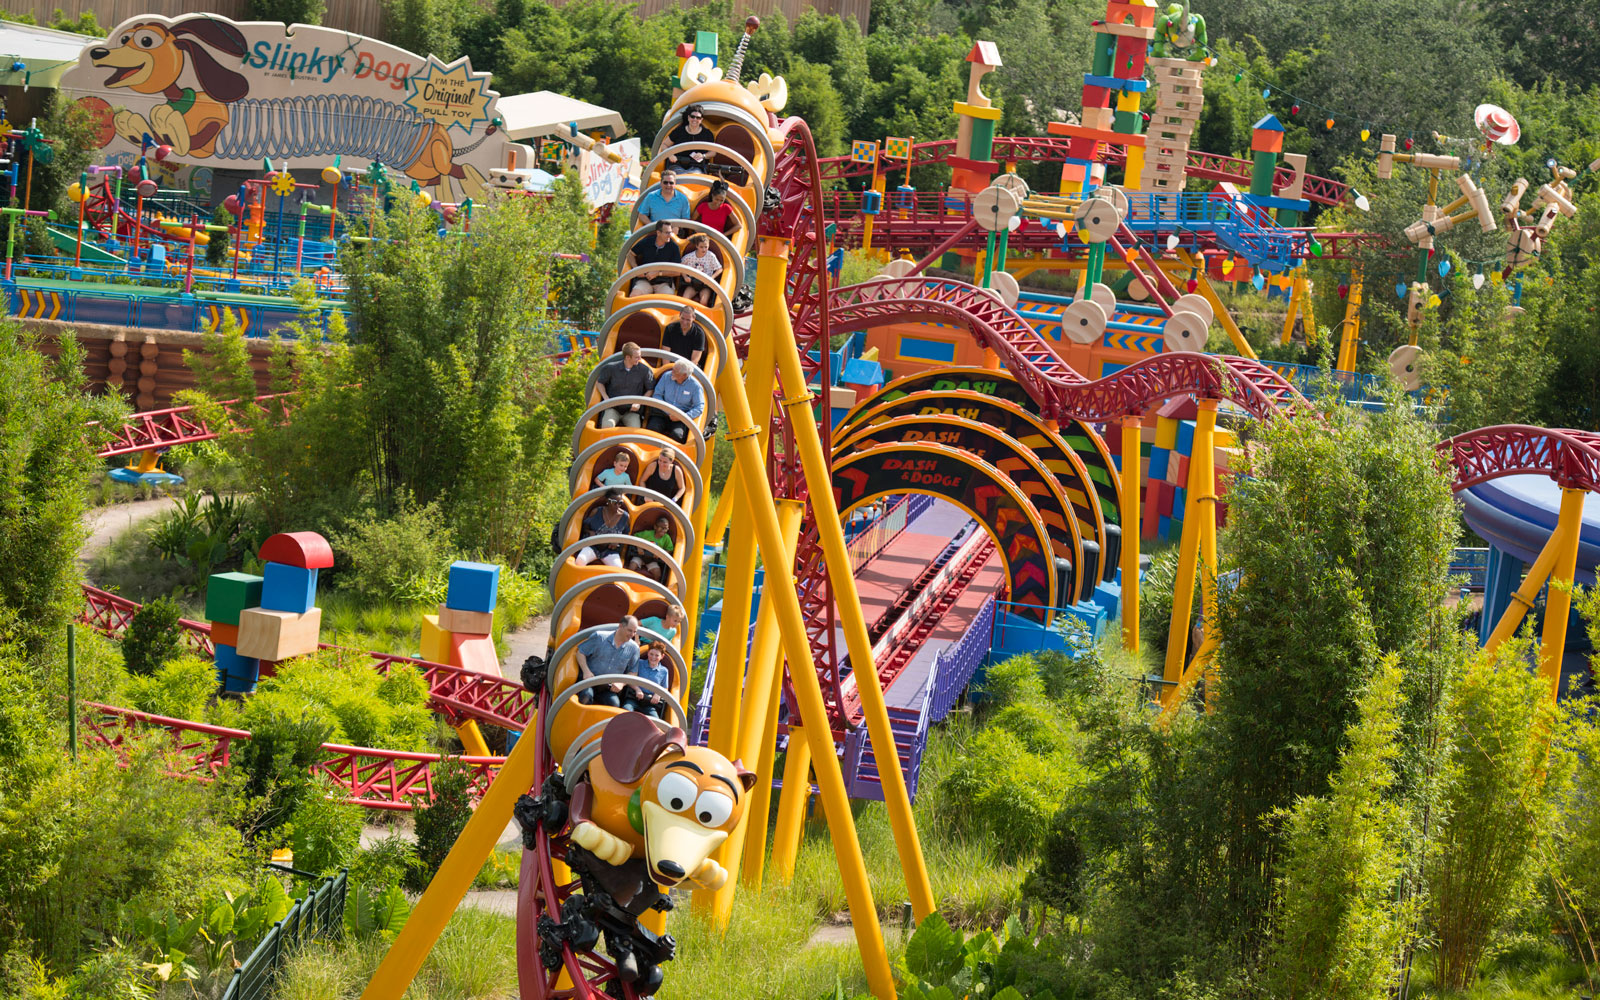 The Slinky Dog Dash will be one of the anticipated rides at Toy Story Land opening at Disney's Hollywood Studios.